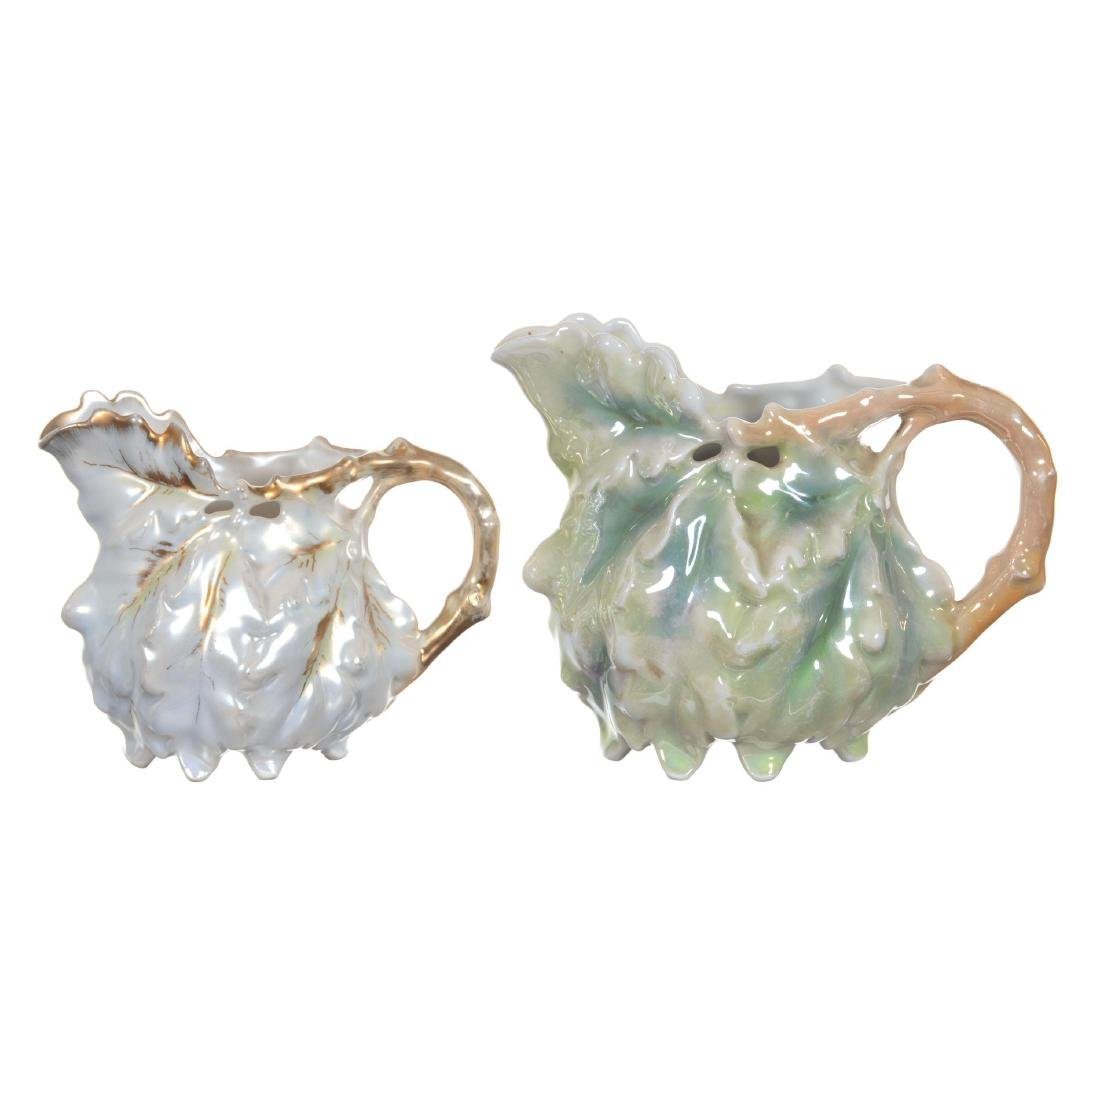 (2) Royal Bayreuth Oak Leaf Pitchers